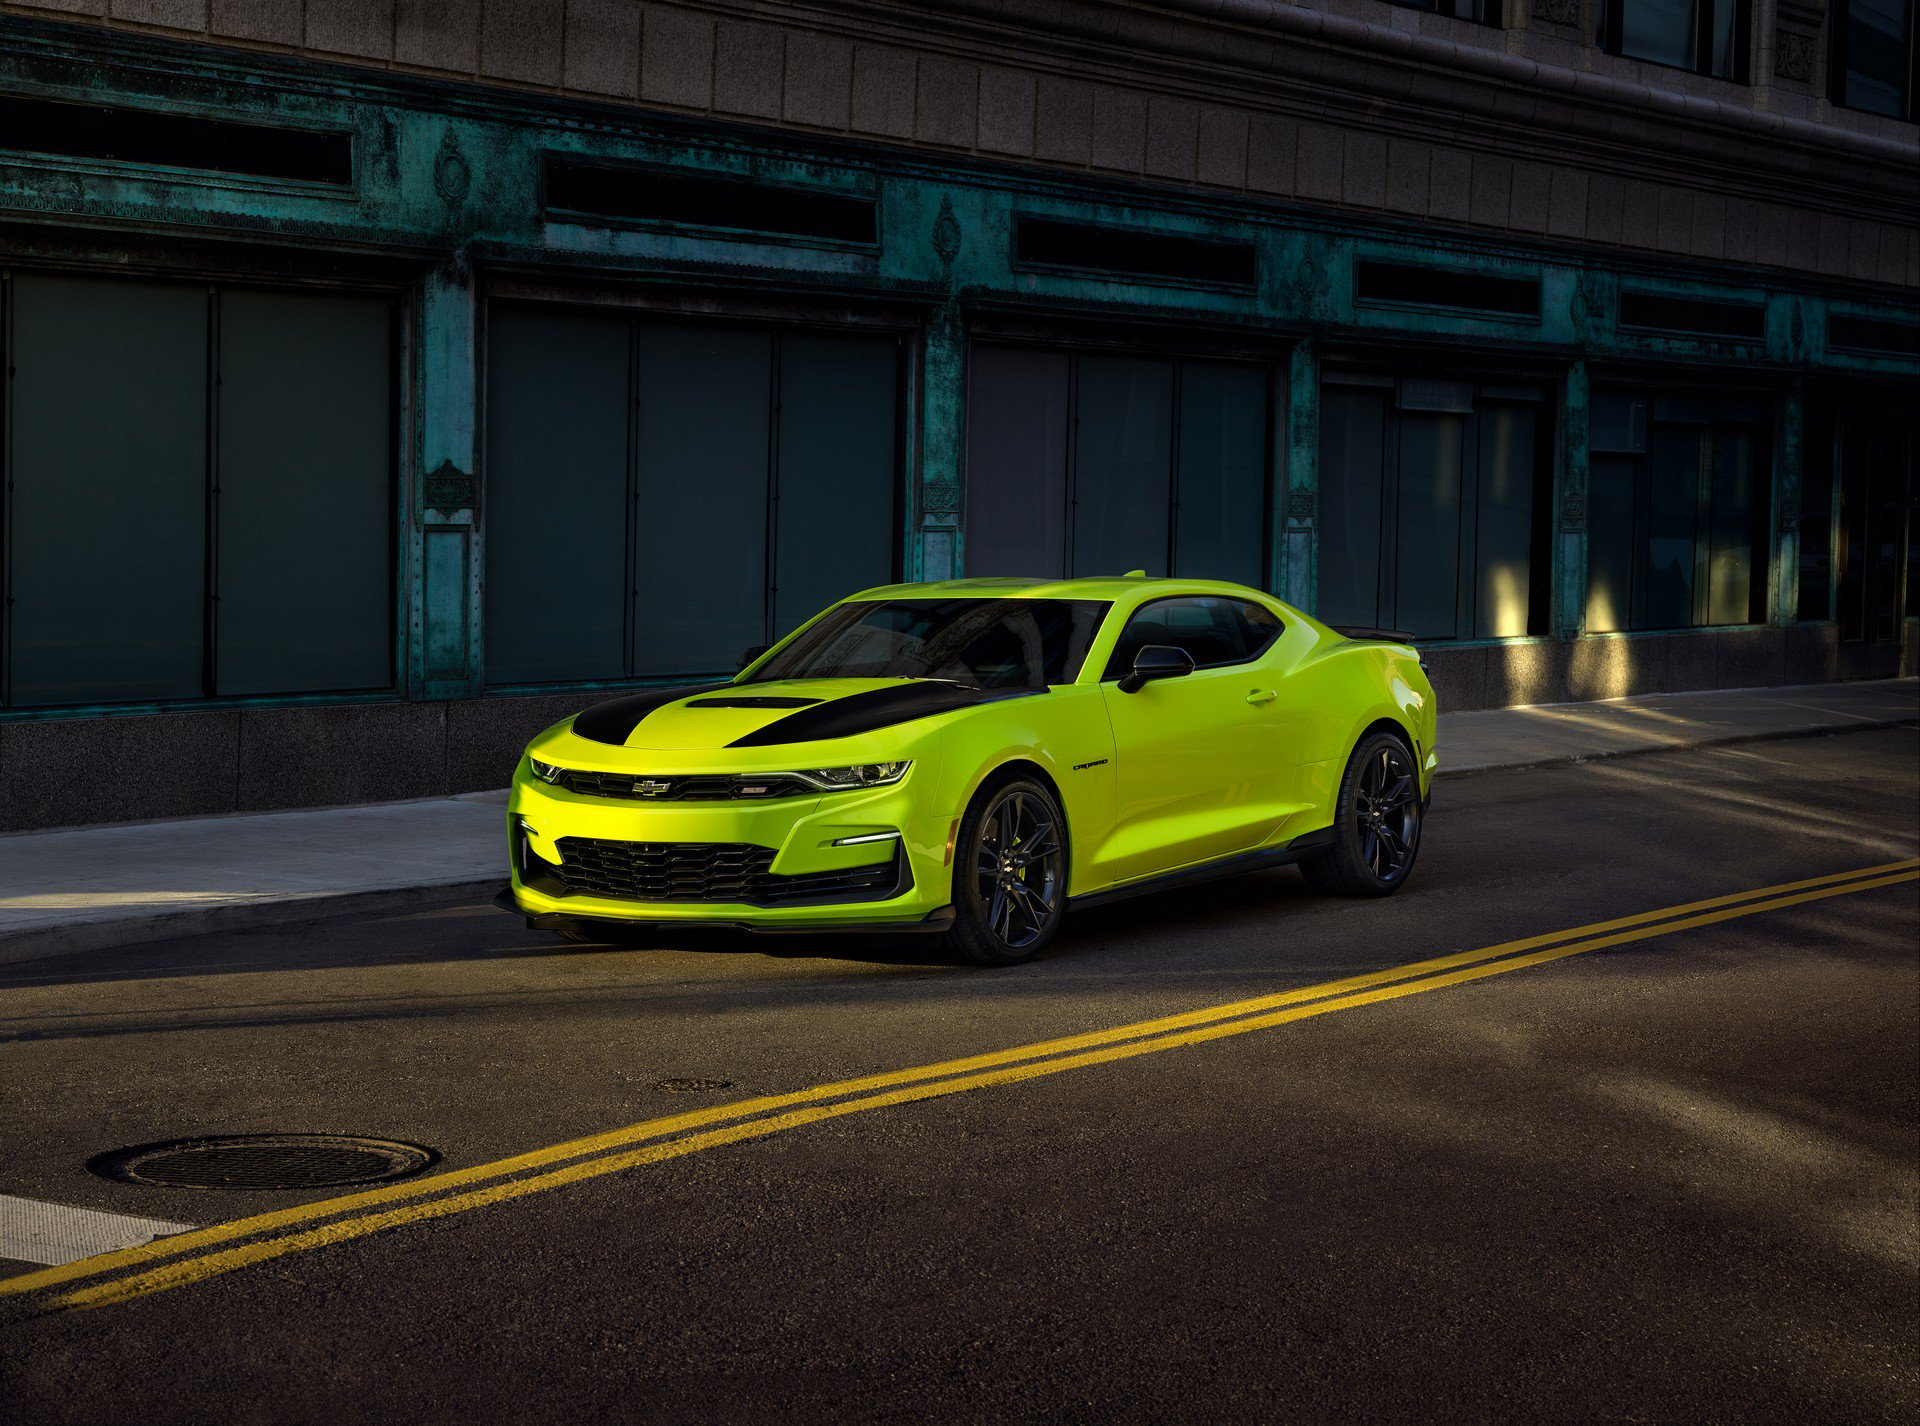 Camaro Ss Shock Concept Previews 2020 Chevrolet Camaro Ss Autoevolution